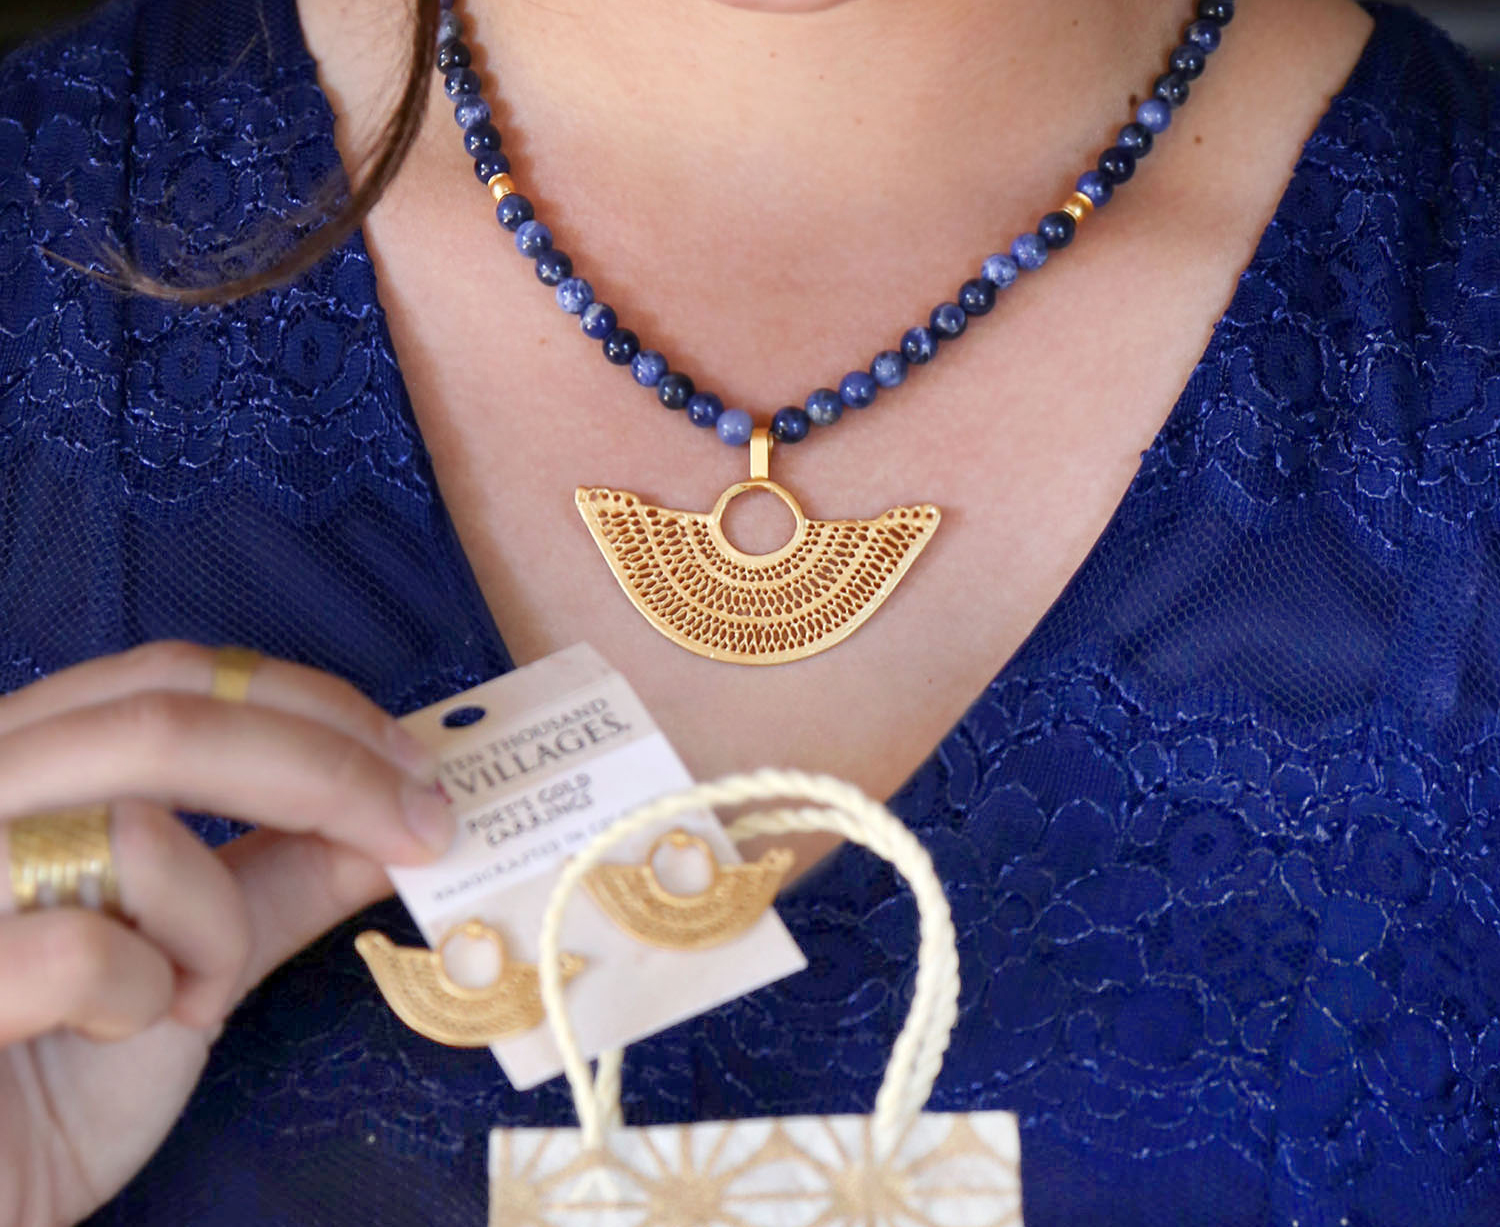 Poet's Gold Necklace. Authentic Fair Trade Product. Ethically sourced. Handcrafted in Colombia. 24K Gold Fill